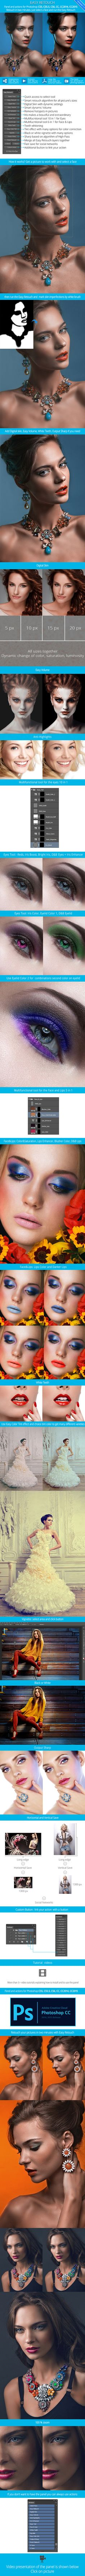 best Tutorials Tips images on Pinterest in Image editing